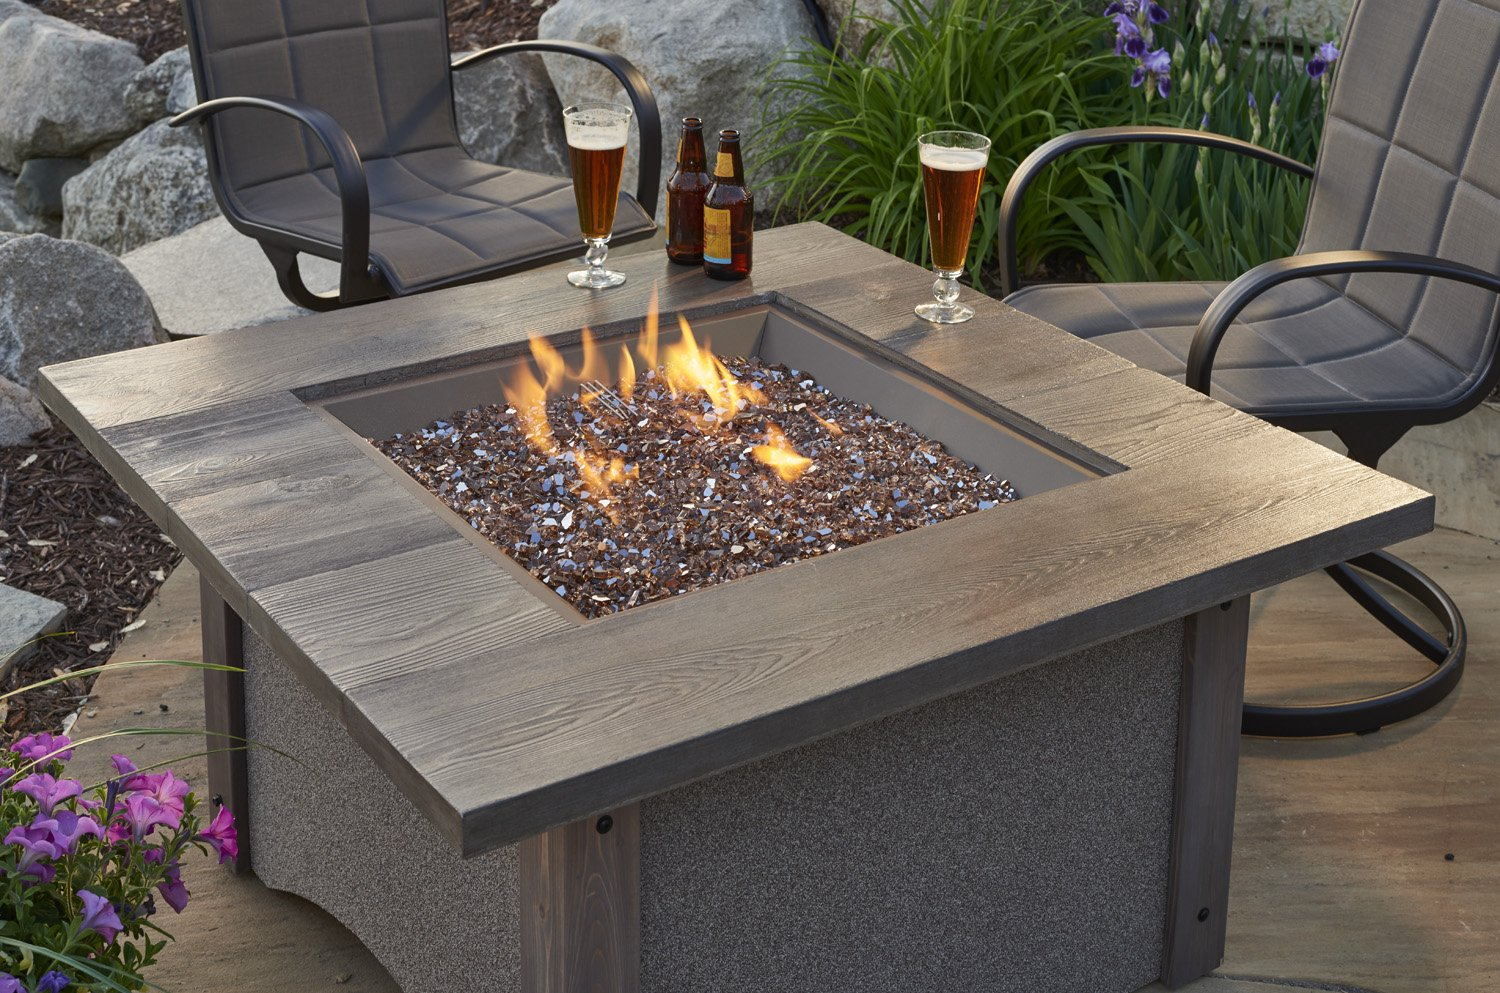 Pine Ridge, Square table, granite, dining table, promotion, sale, fire pit, firepit, fire table,  firetable, Outdoor Greatroom Company